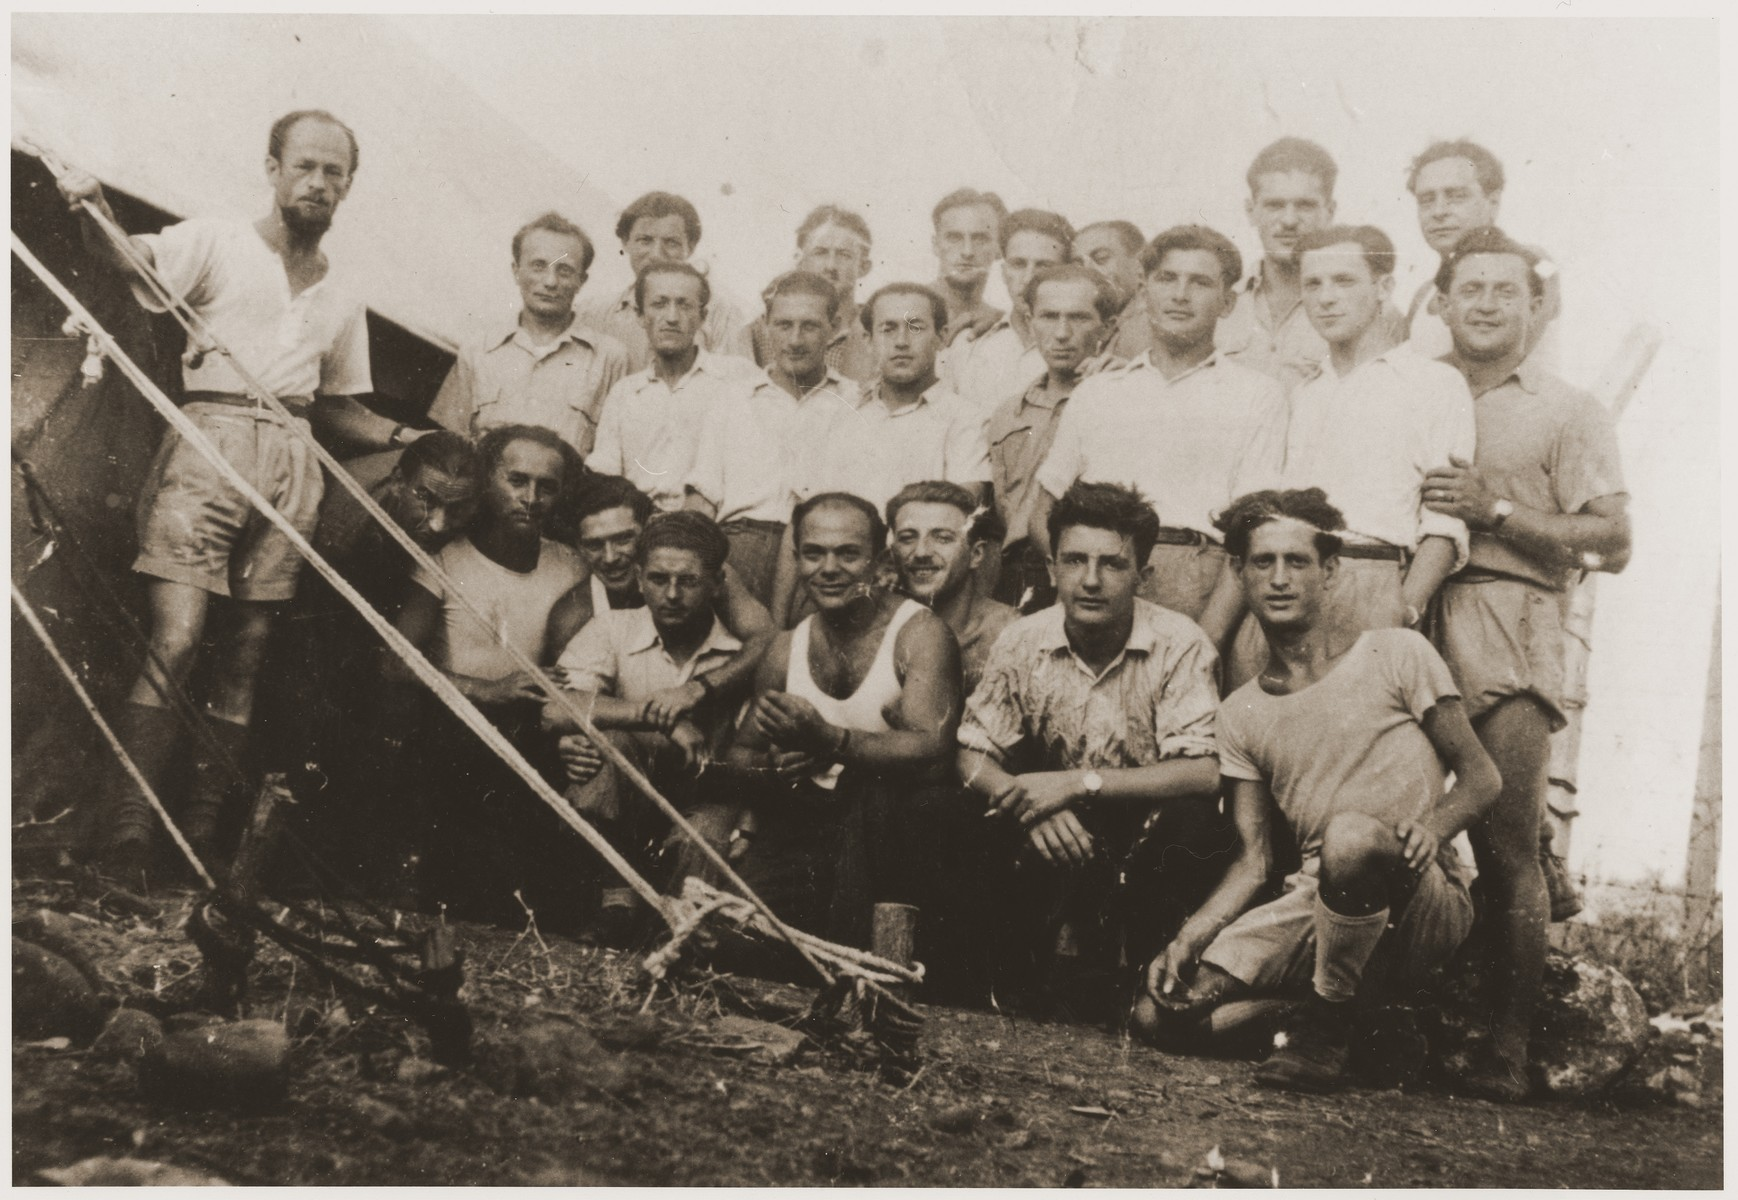 Members of the Nekama group during their imprisonment at the Athlit detention camp near Haifa.